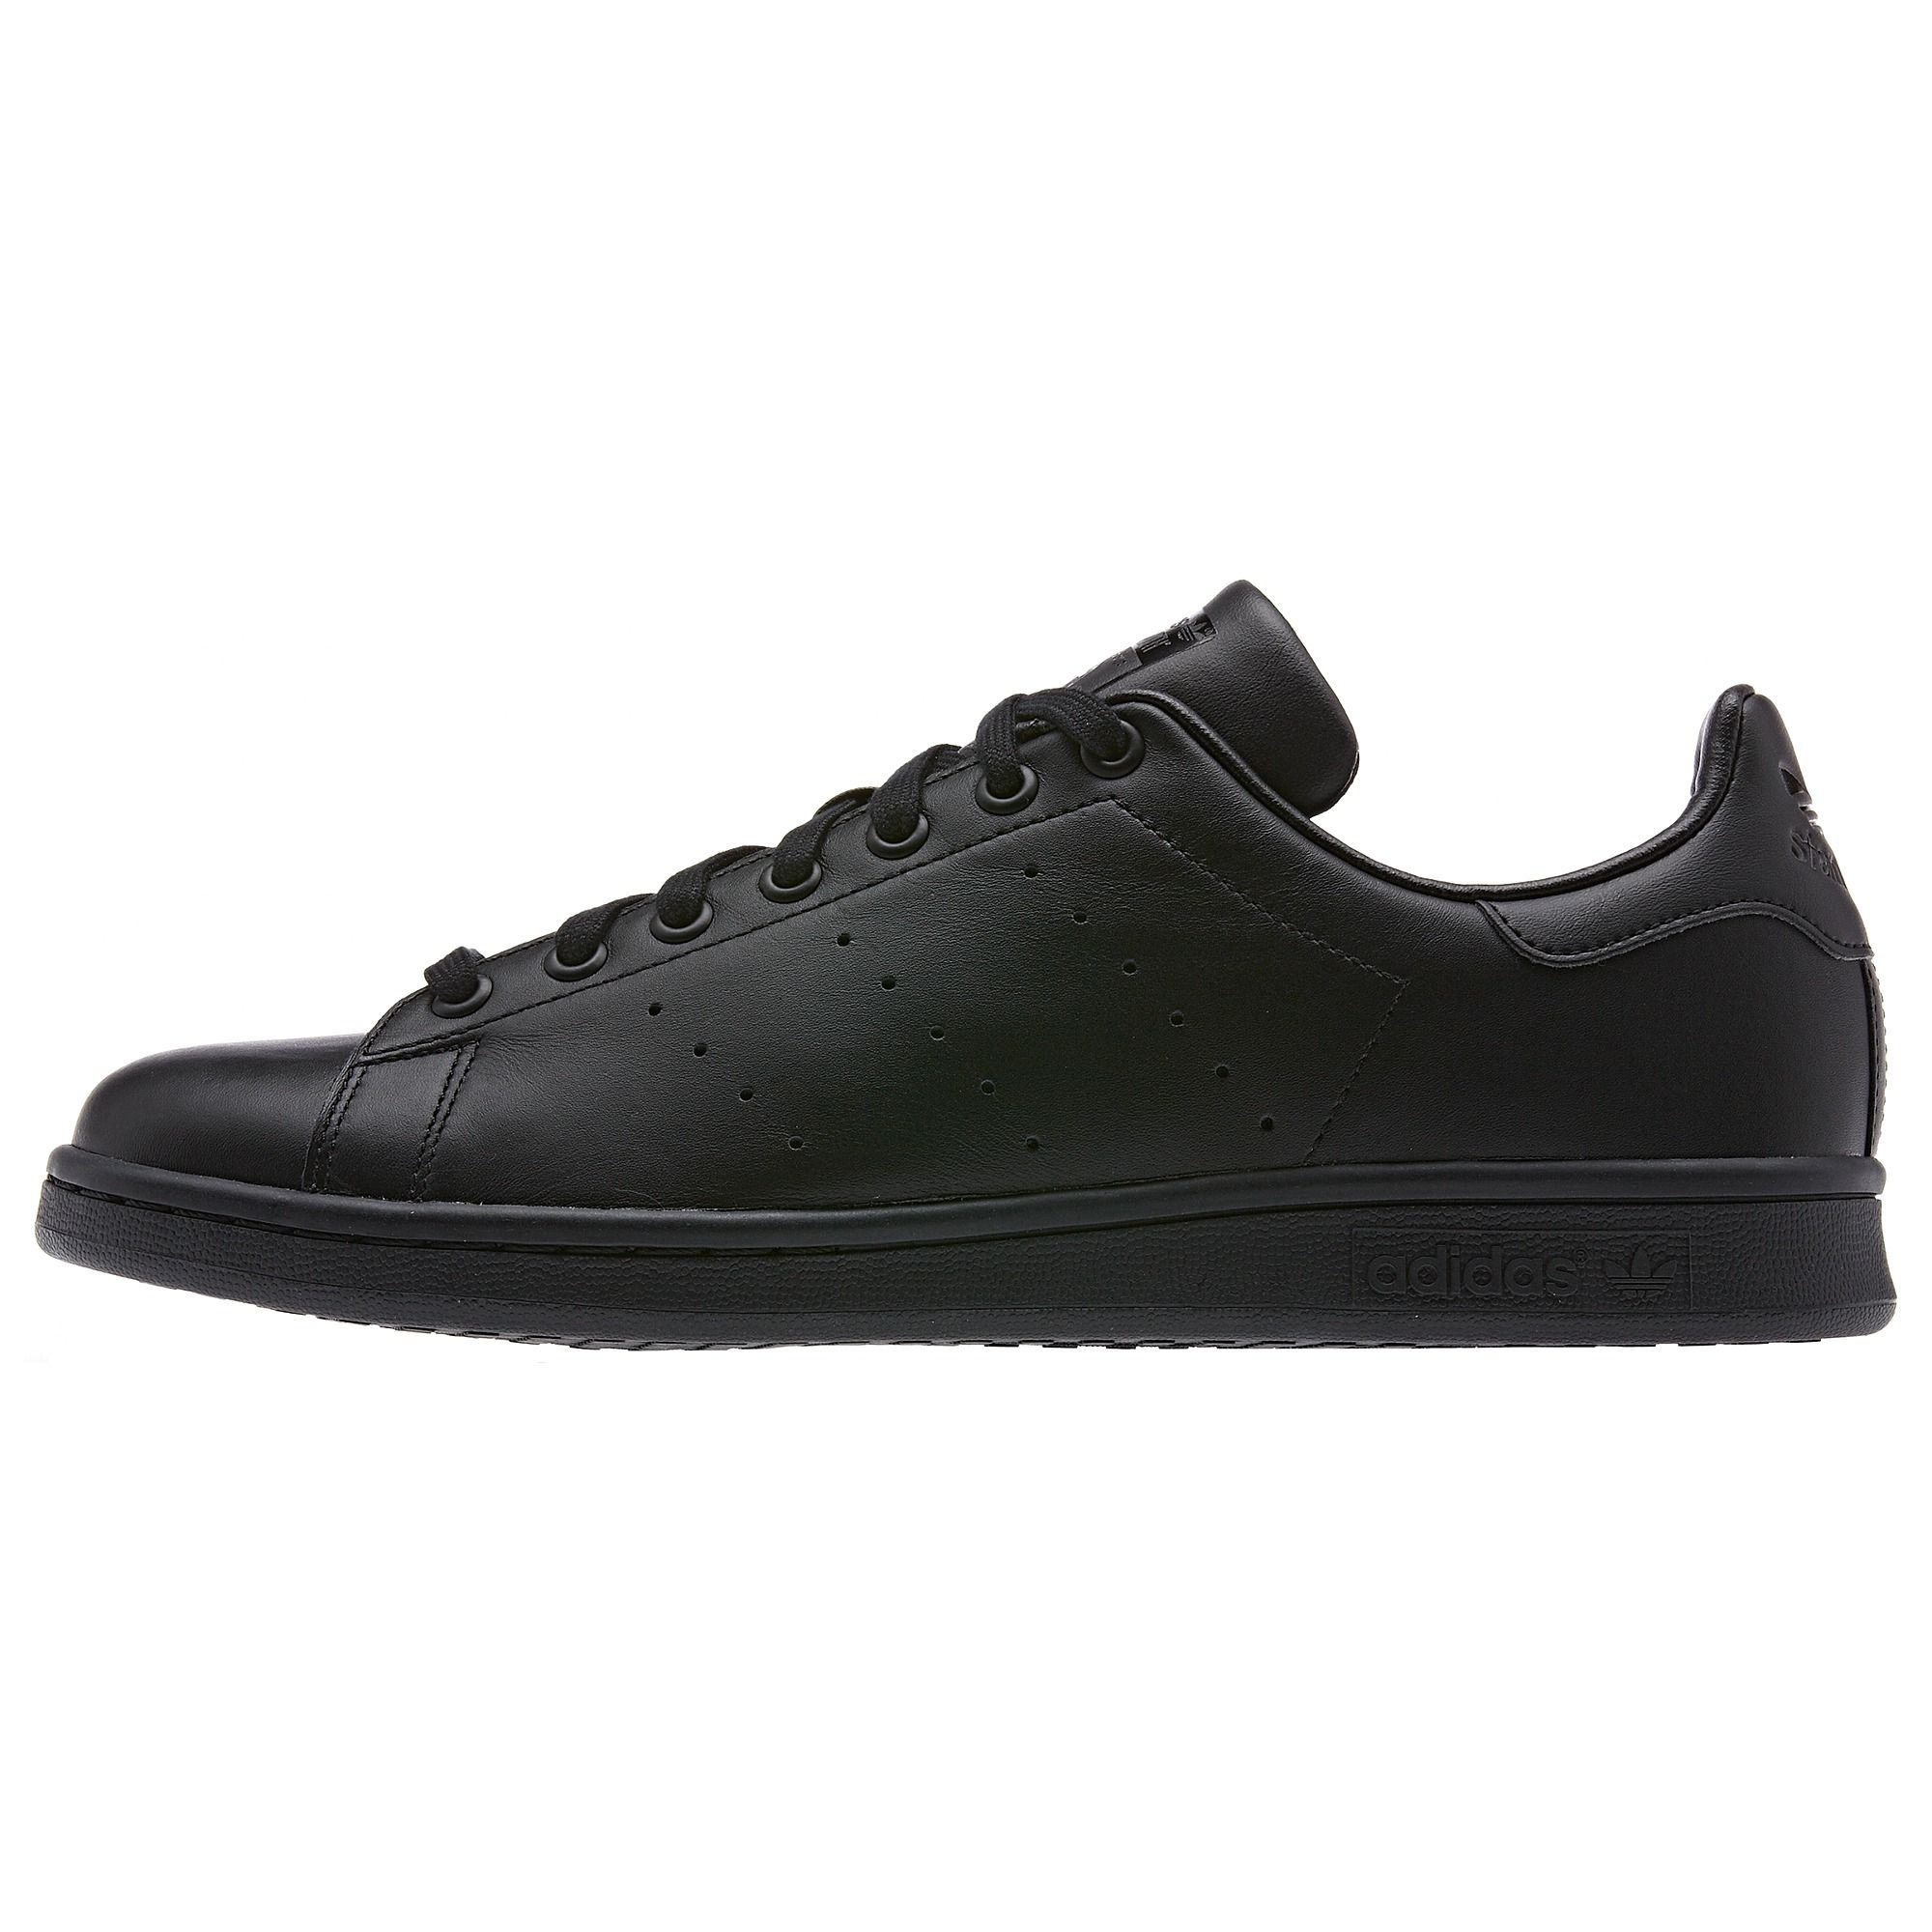 cheap for discount 750c8 6d176 Originally created in 1973 for tennis star Stan Smith, the adidas Stan Smith  shoes have dominated the test of time. Smooth full grain leather, ...